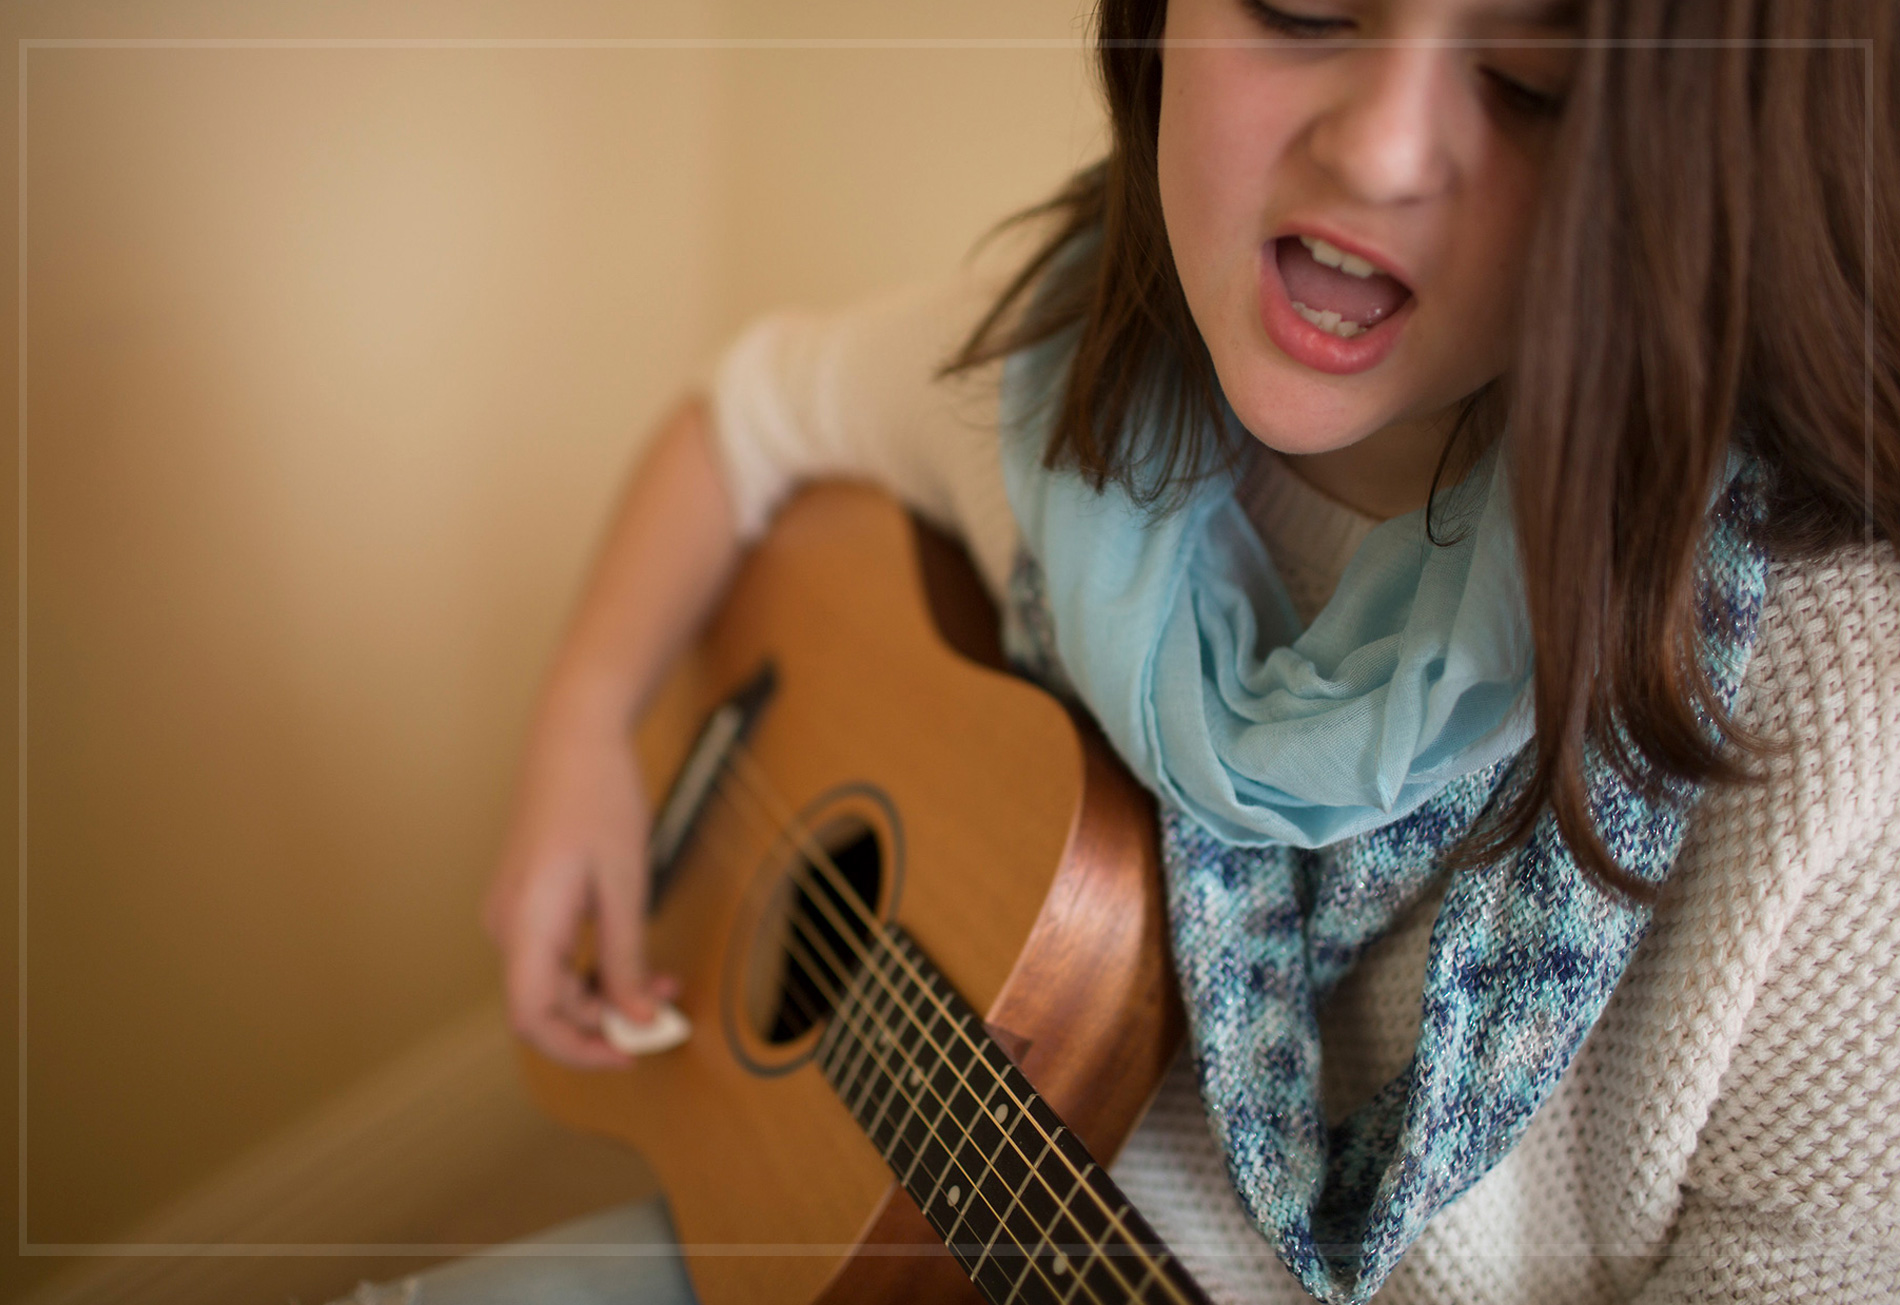 northwest-arkansas-rogers-tween-young-musician-photo-session-sunny-skaggs-photography.jpg